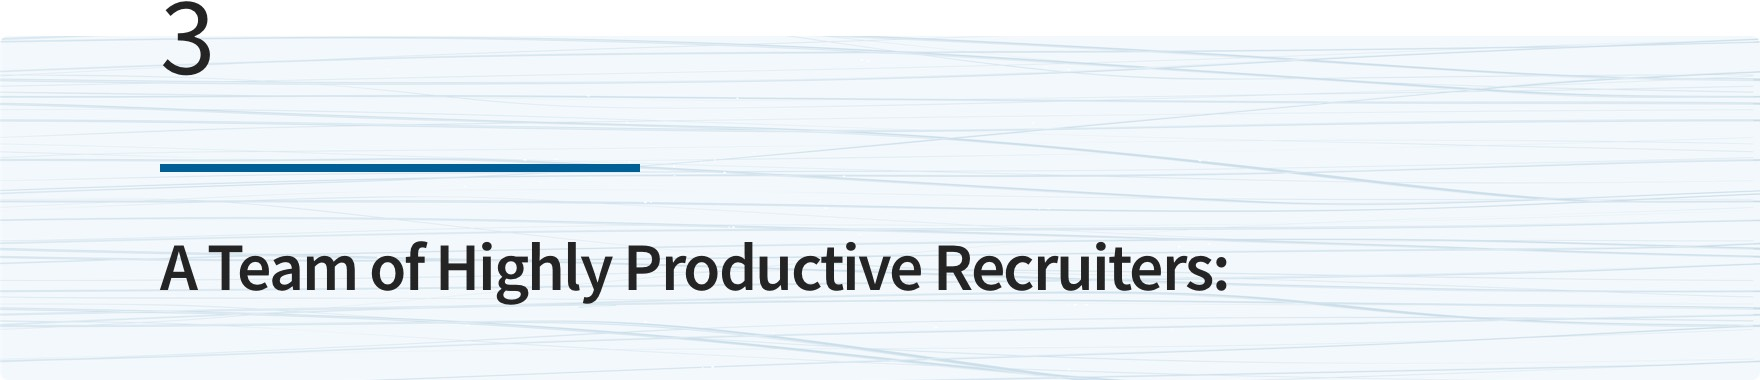 A Team of Highly Productive Recruiters